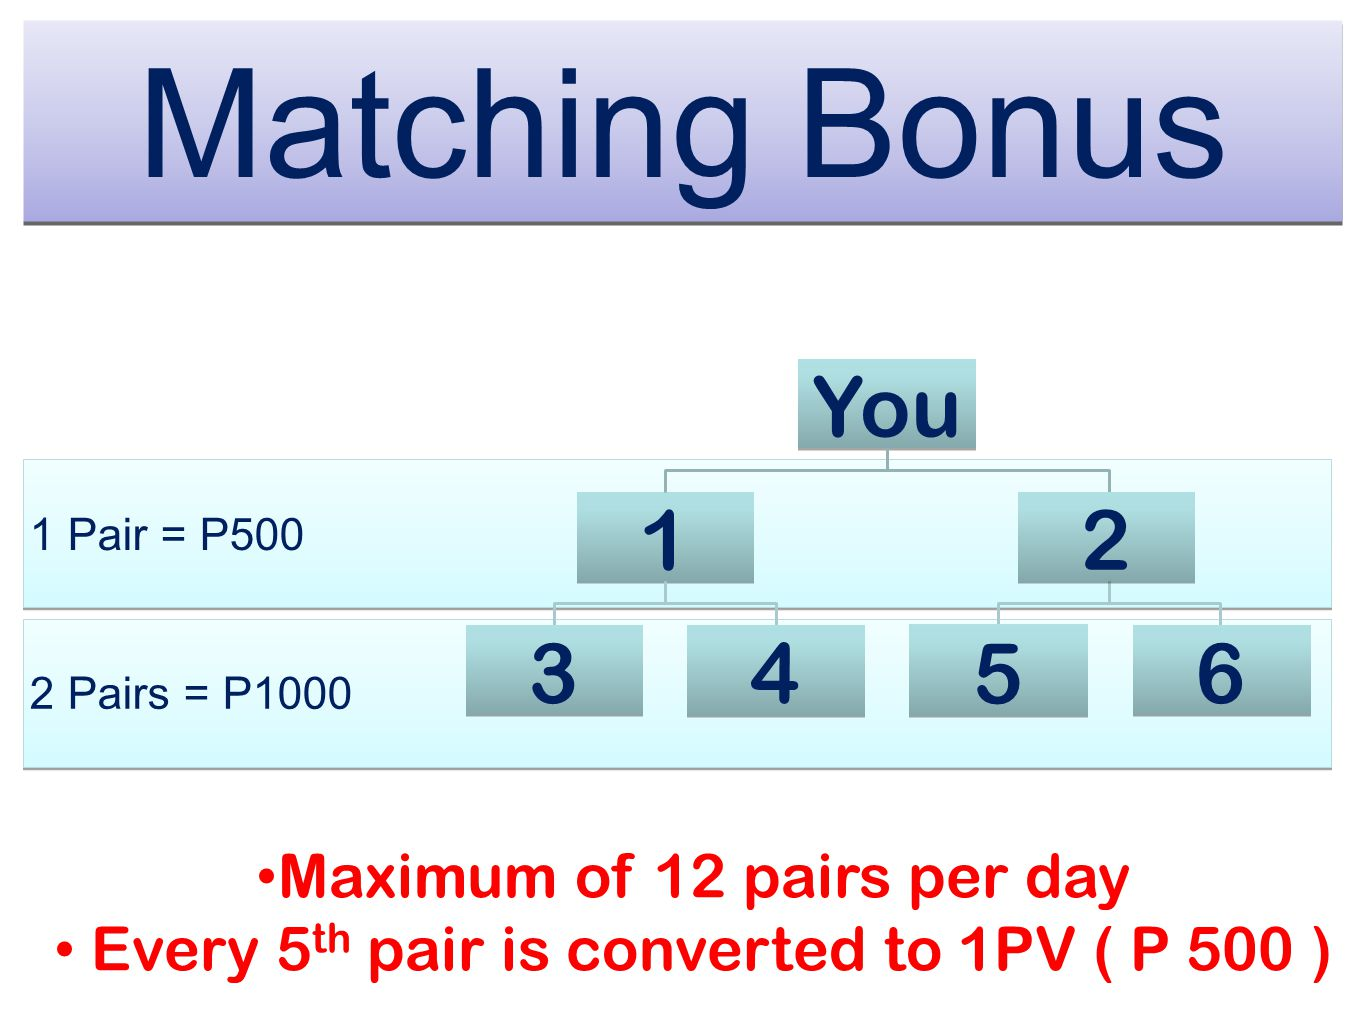 Matching Bonus ` You 1 2 3 4 5 6 Maximum of 12 pairs per day